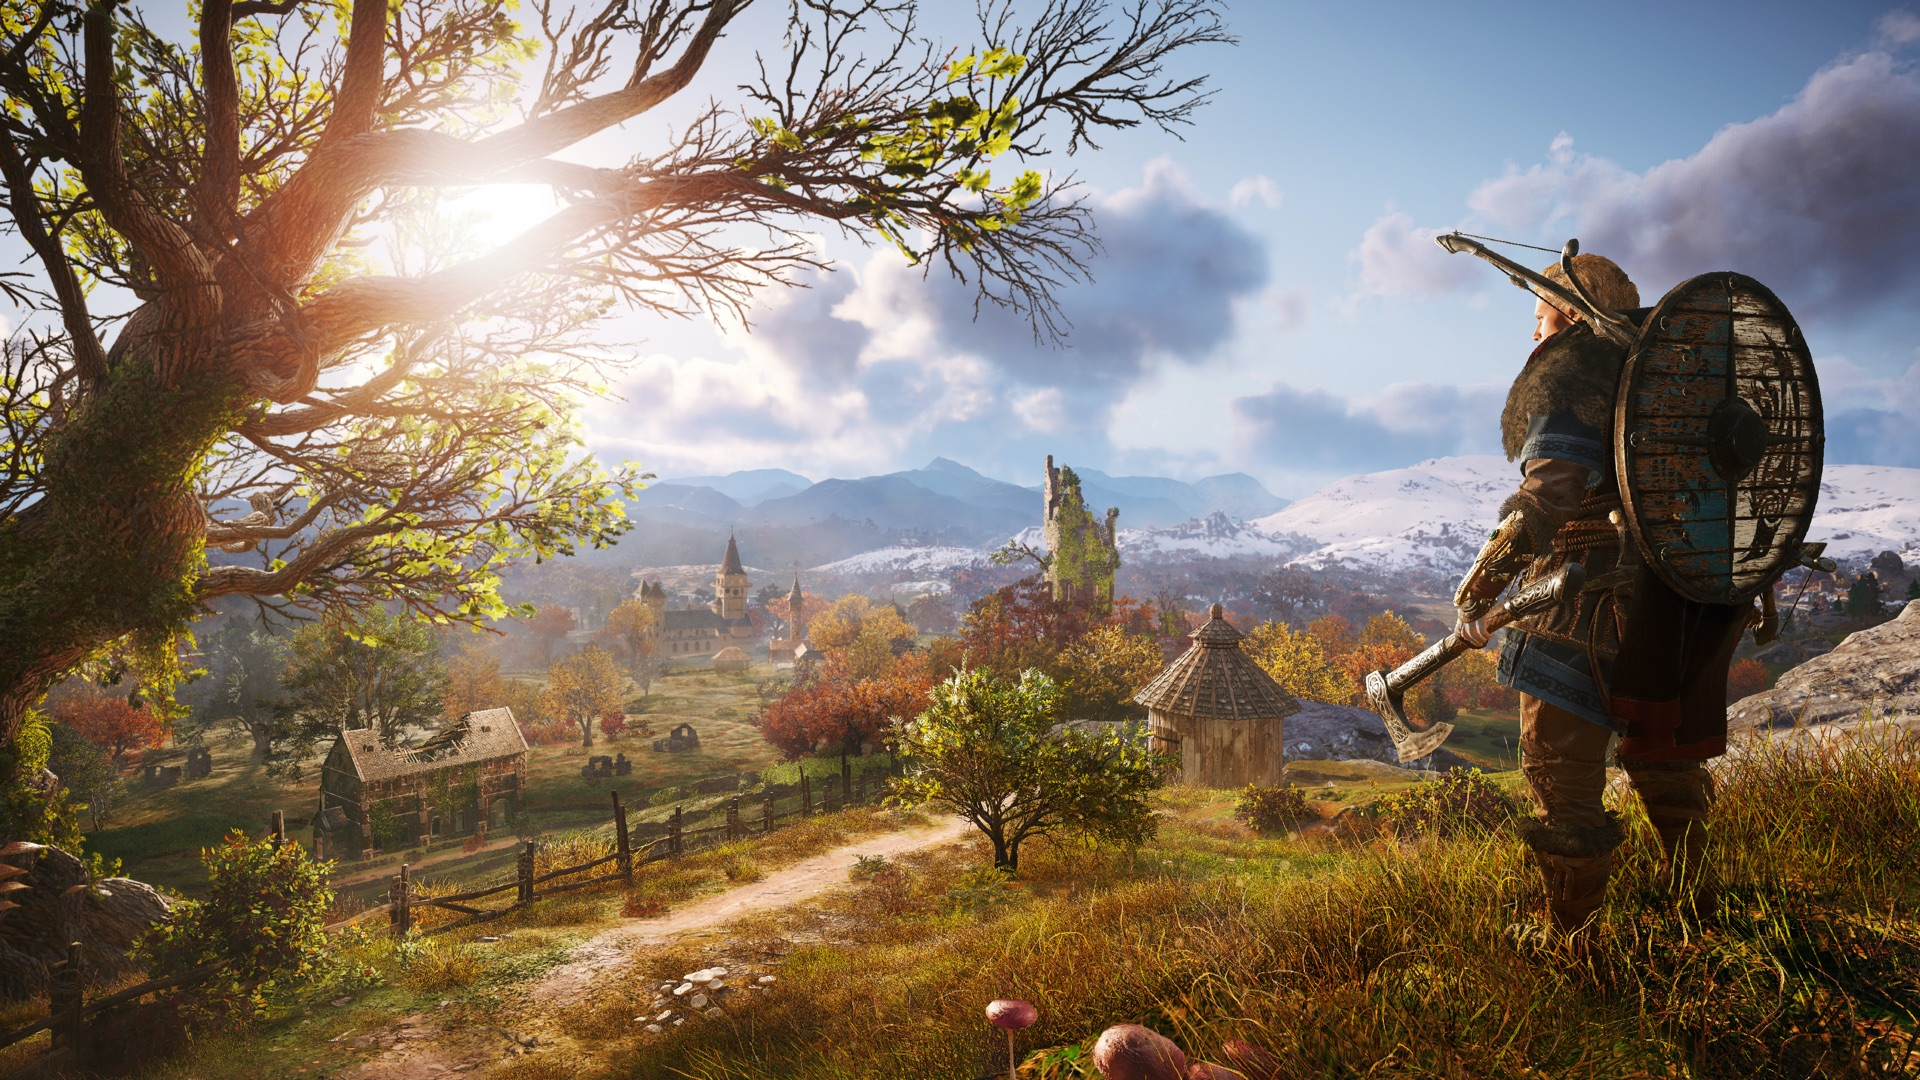 A scenic countryside from Assassin's Creed Valhalla.